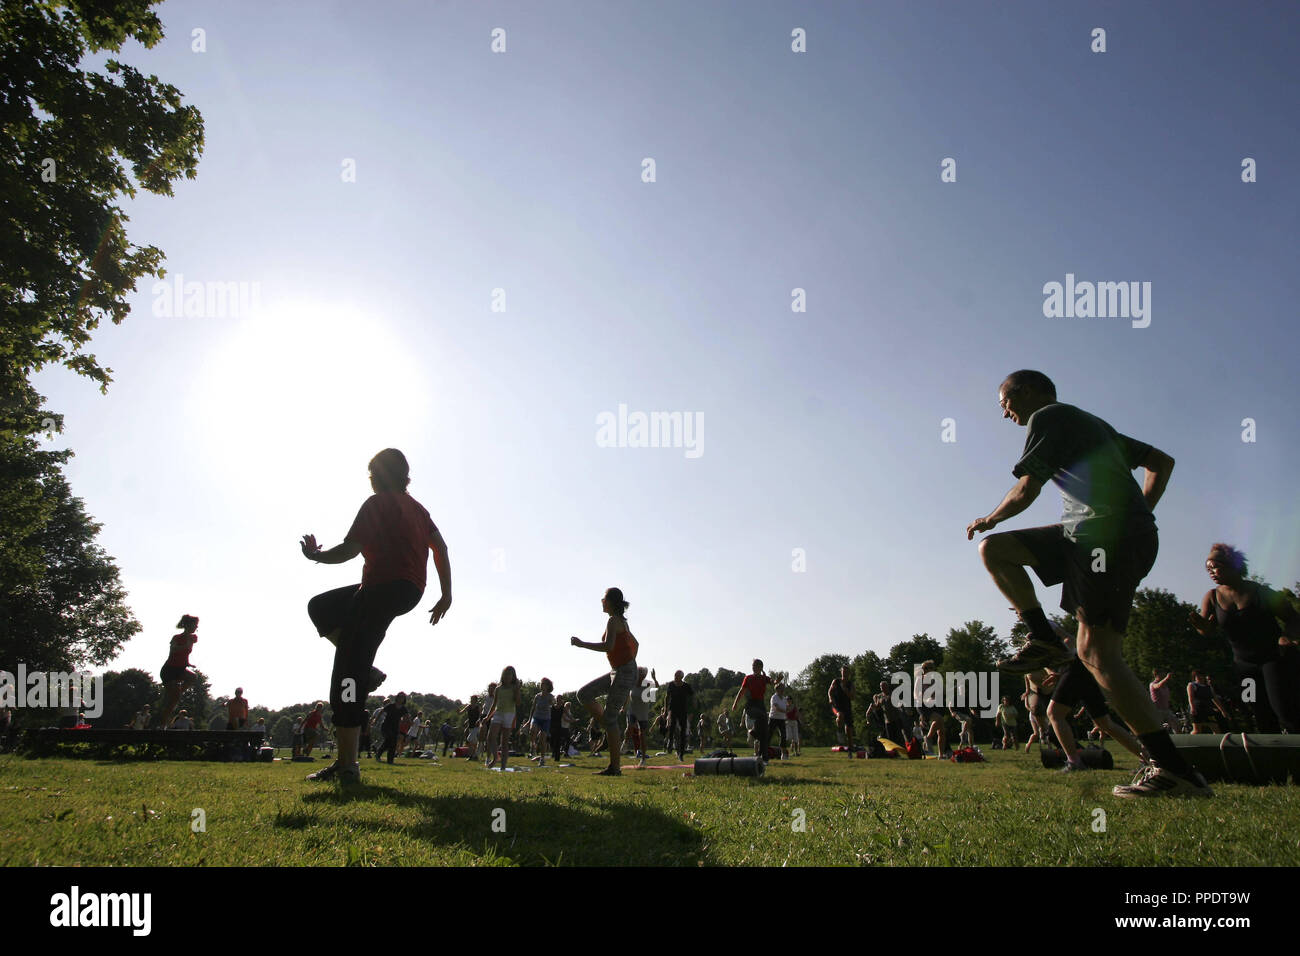 Recreational athletes move under the guidance of a trainer at the 'Gym in the Park', a fitness program of the City of Munich, which is held daily at 18.00 clock in specific parks in Munich. - Stock Image